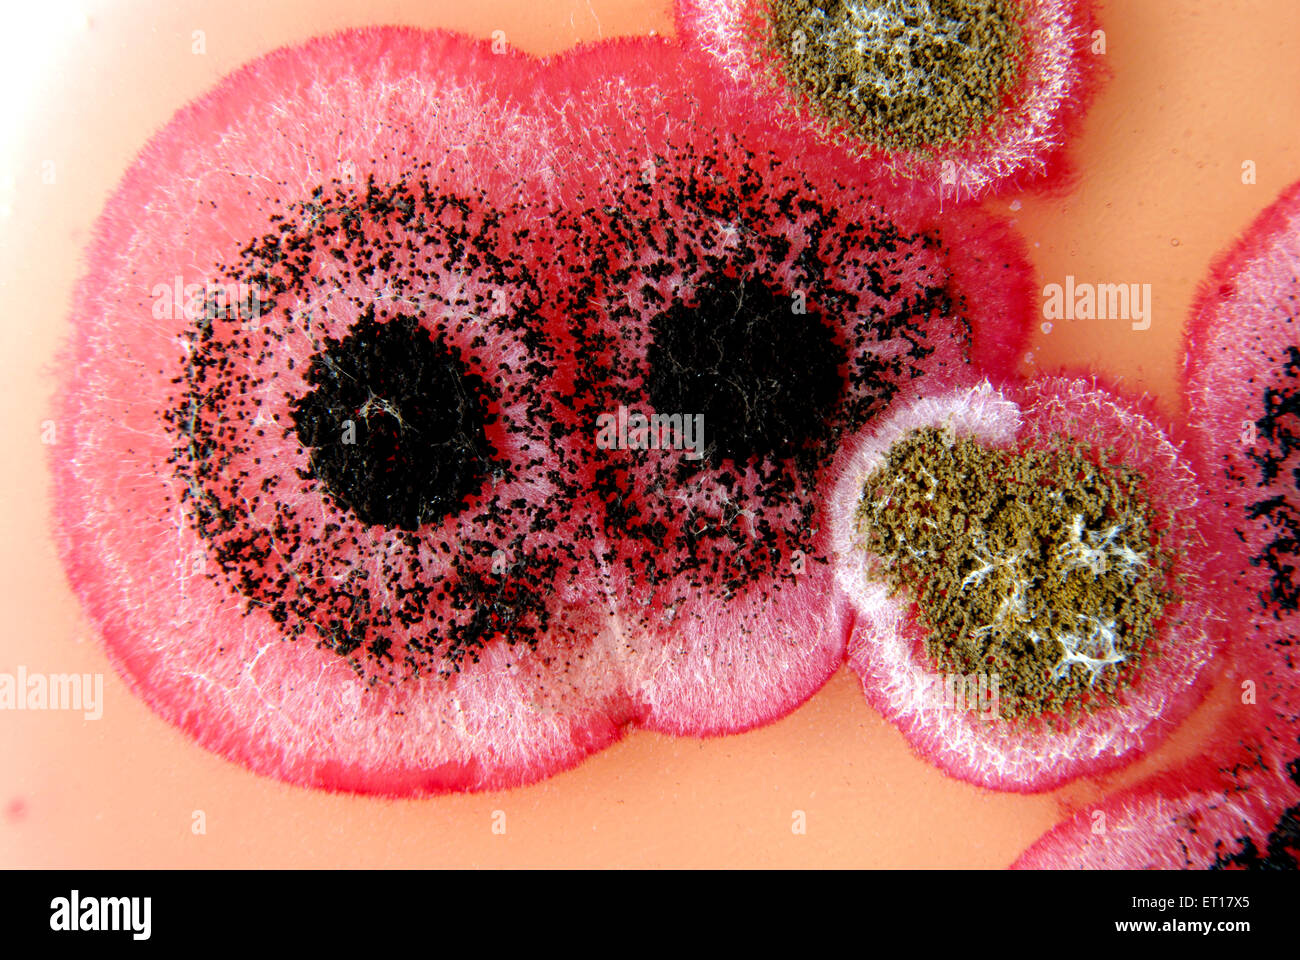 Scientific research fungal colonies cotton seeds on rose bengal chloramphenecal agar - Stock Image